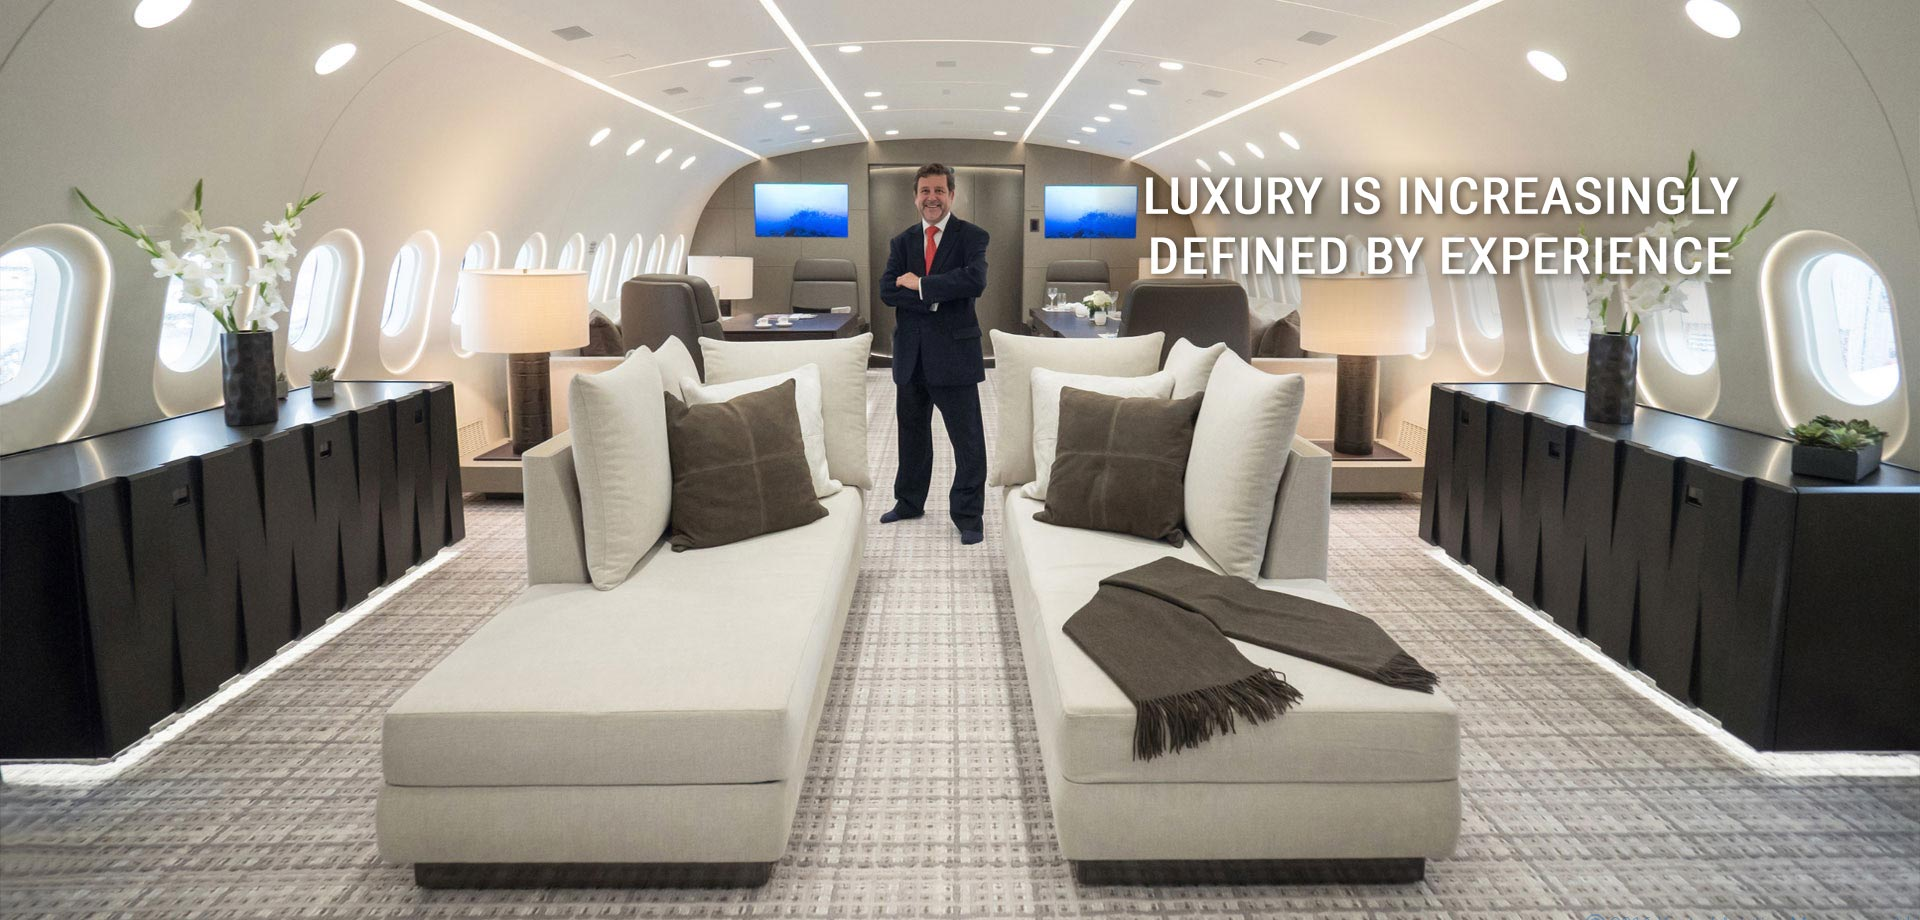 luxury is increasingly defined by experience